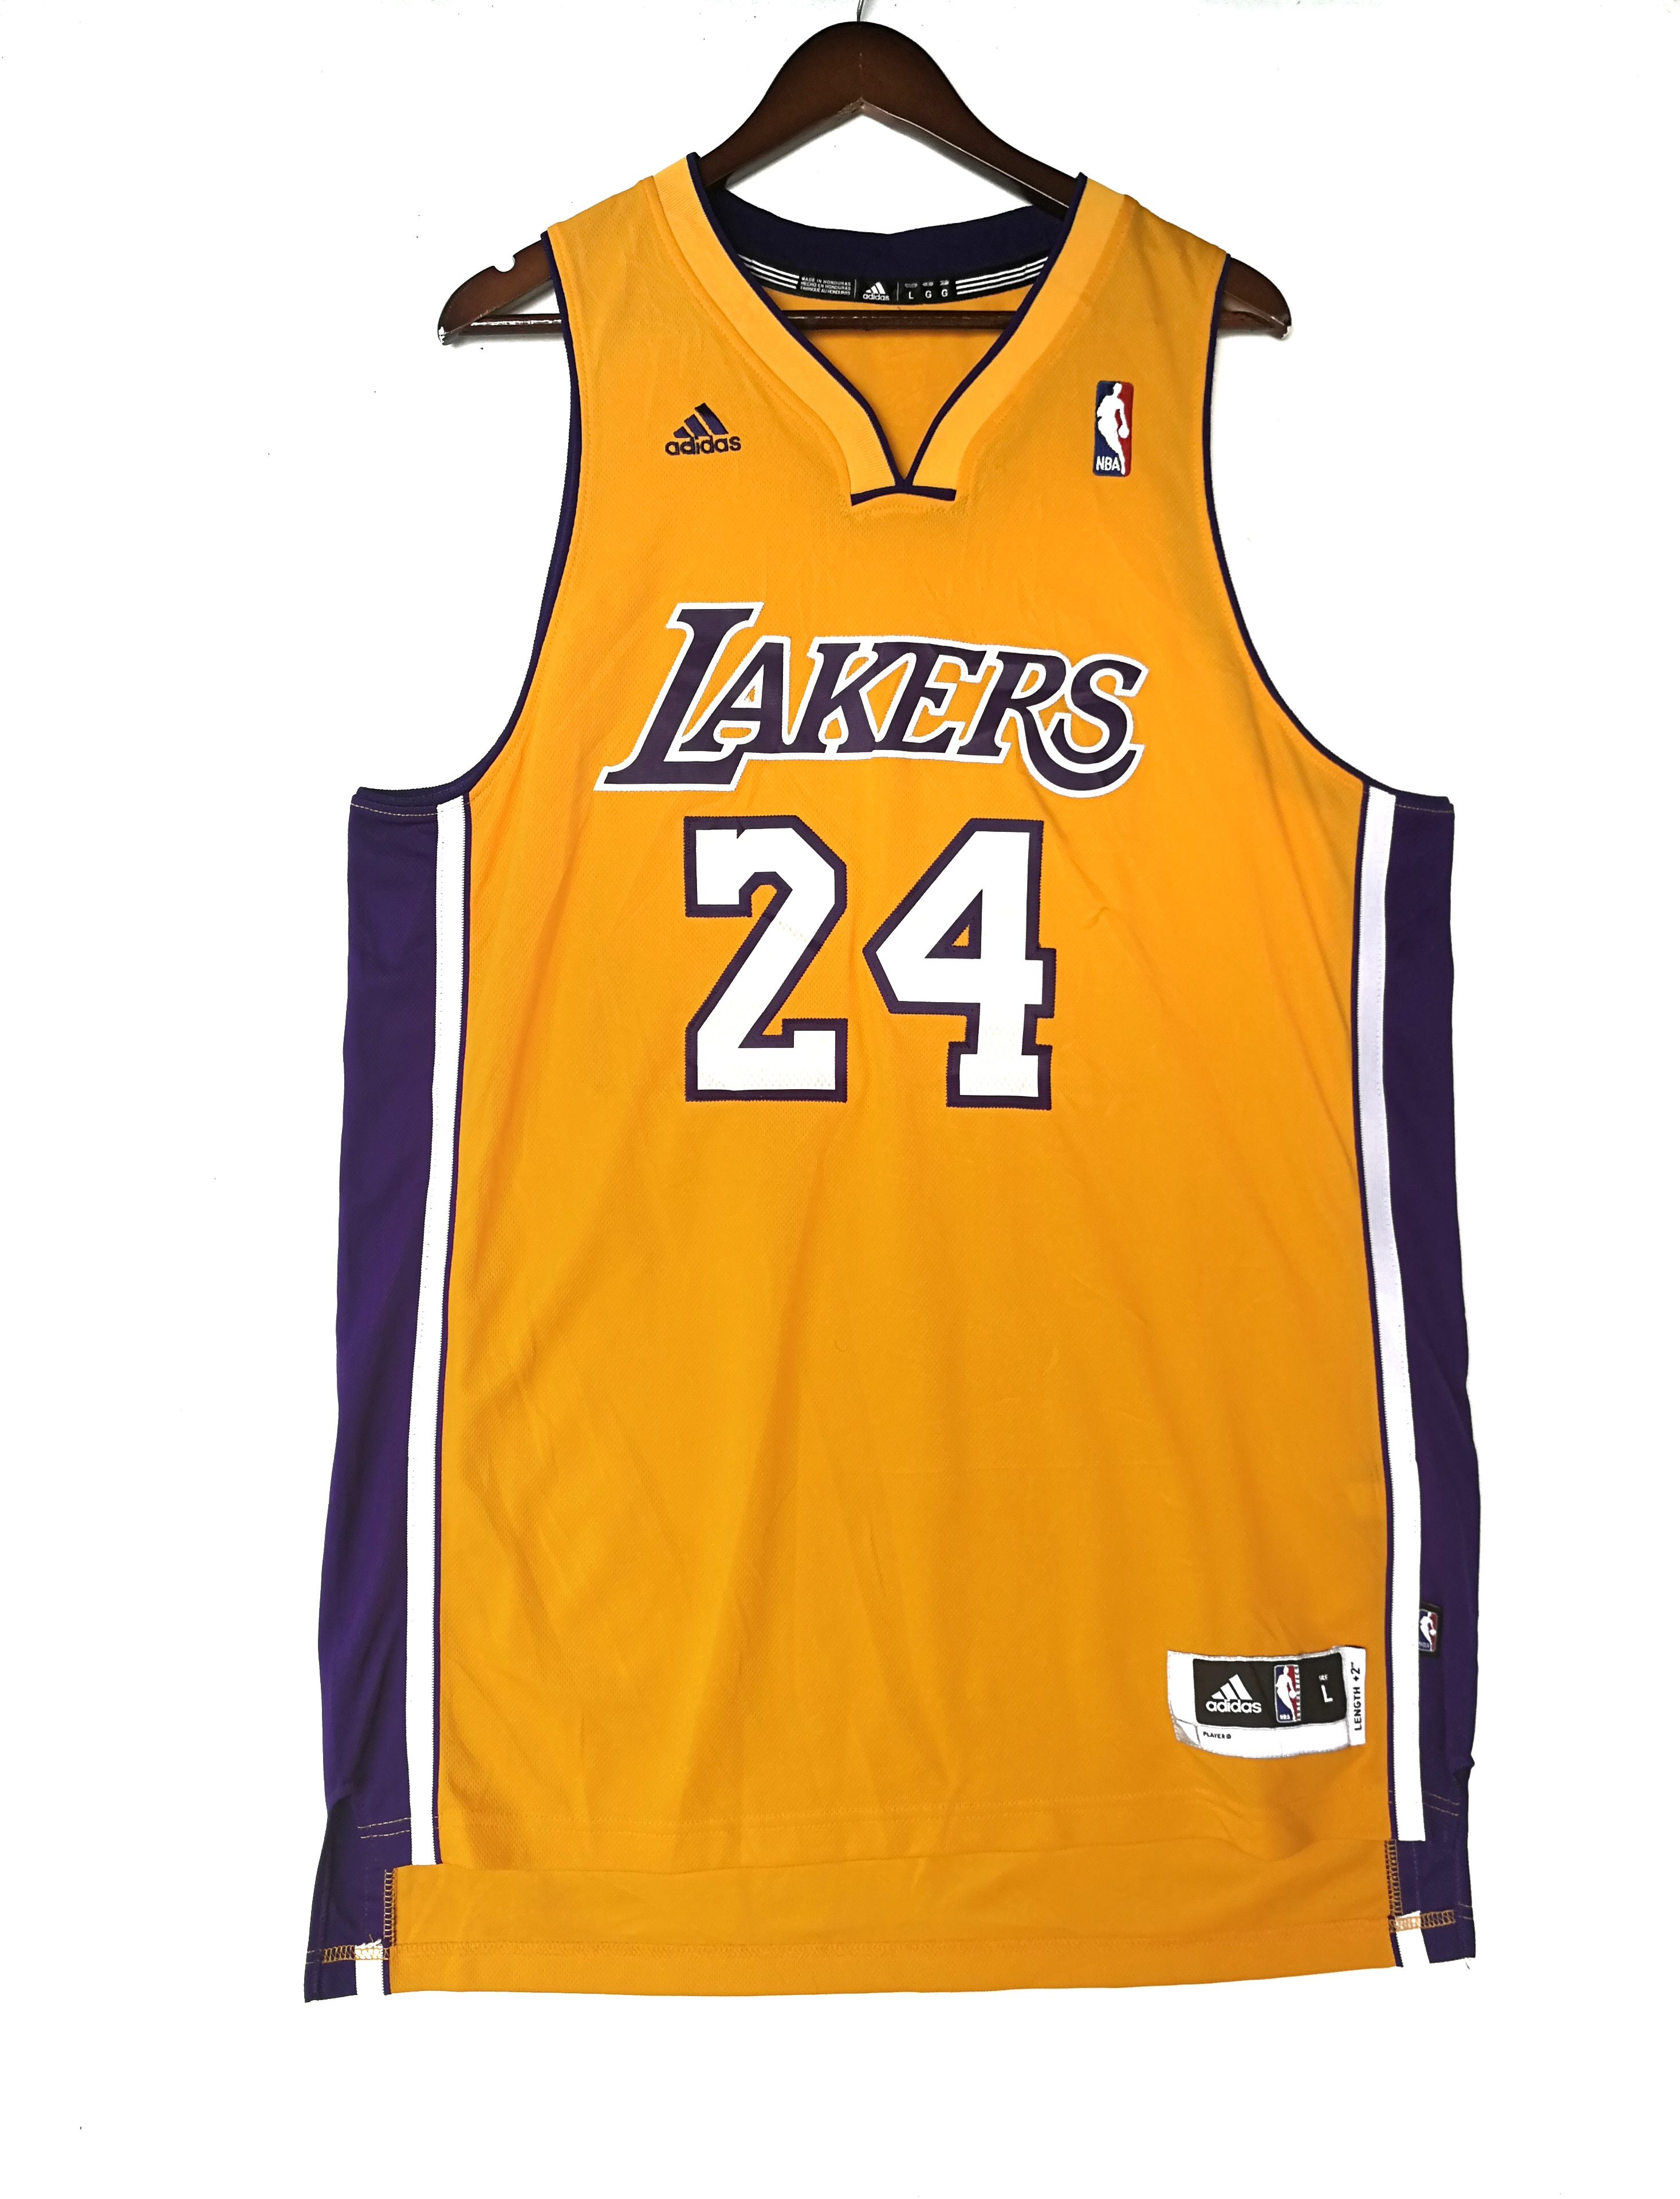 new products a1e21 182b6 Los Angeles Lakers Kobe Bryant embroidered jersey by Adidas not Michael  Jordan Chicago Penny Hardaway The Suns Big Shaq O'Neil